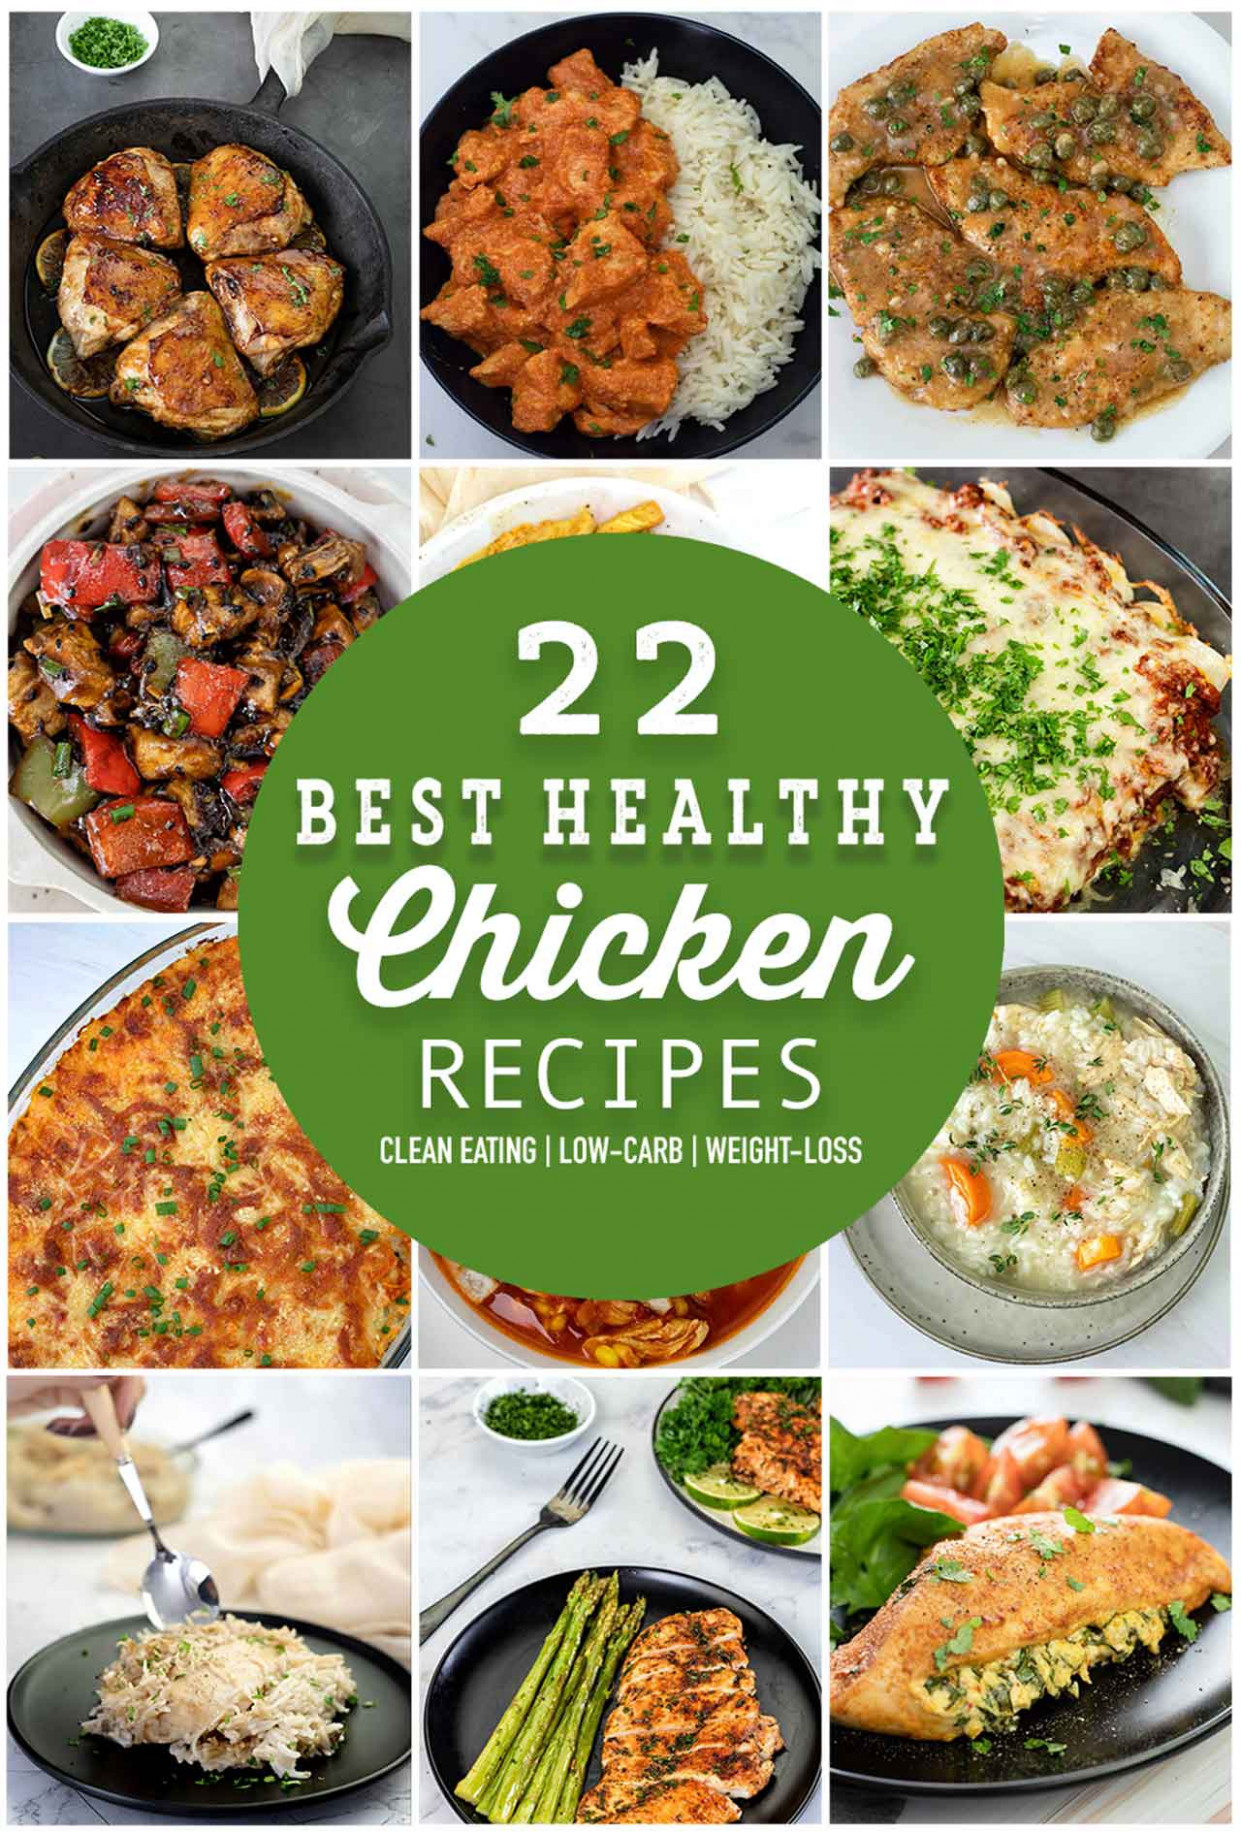 11 Best Healthy Chicken Recipes - A List For The White Meat ..